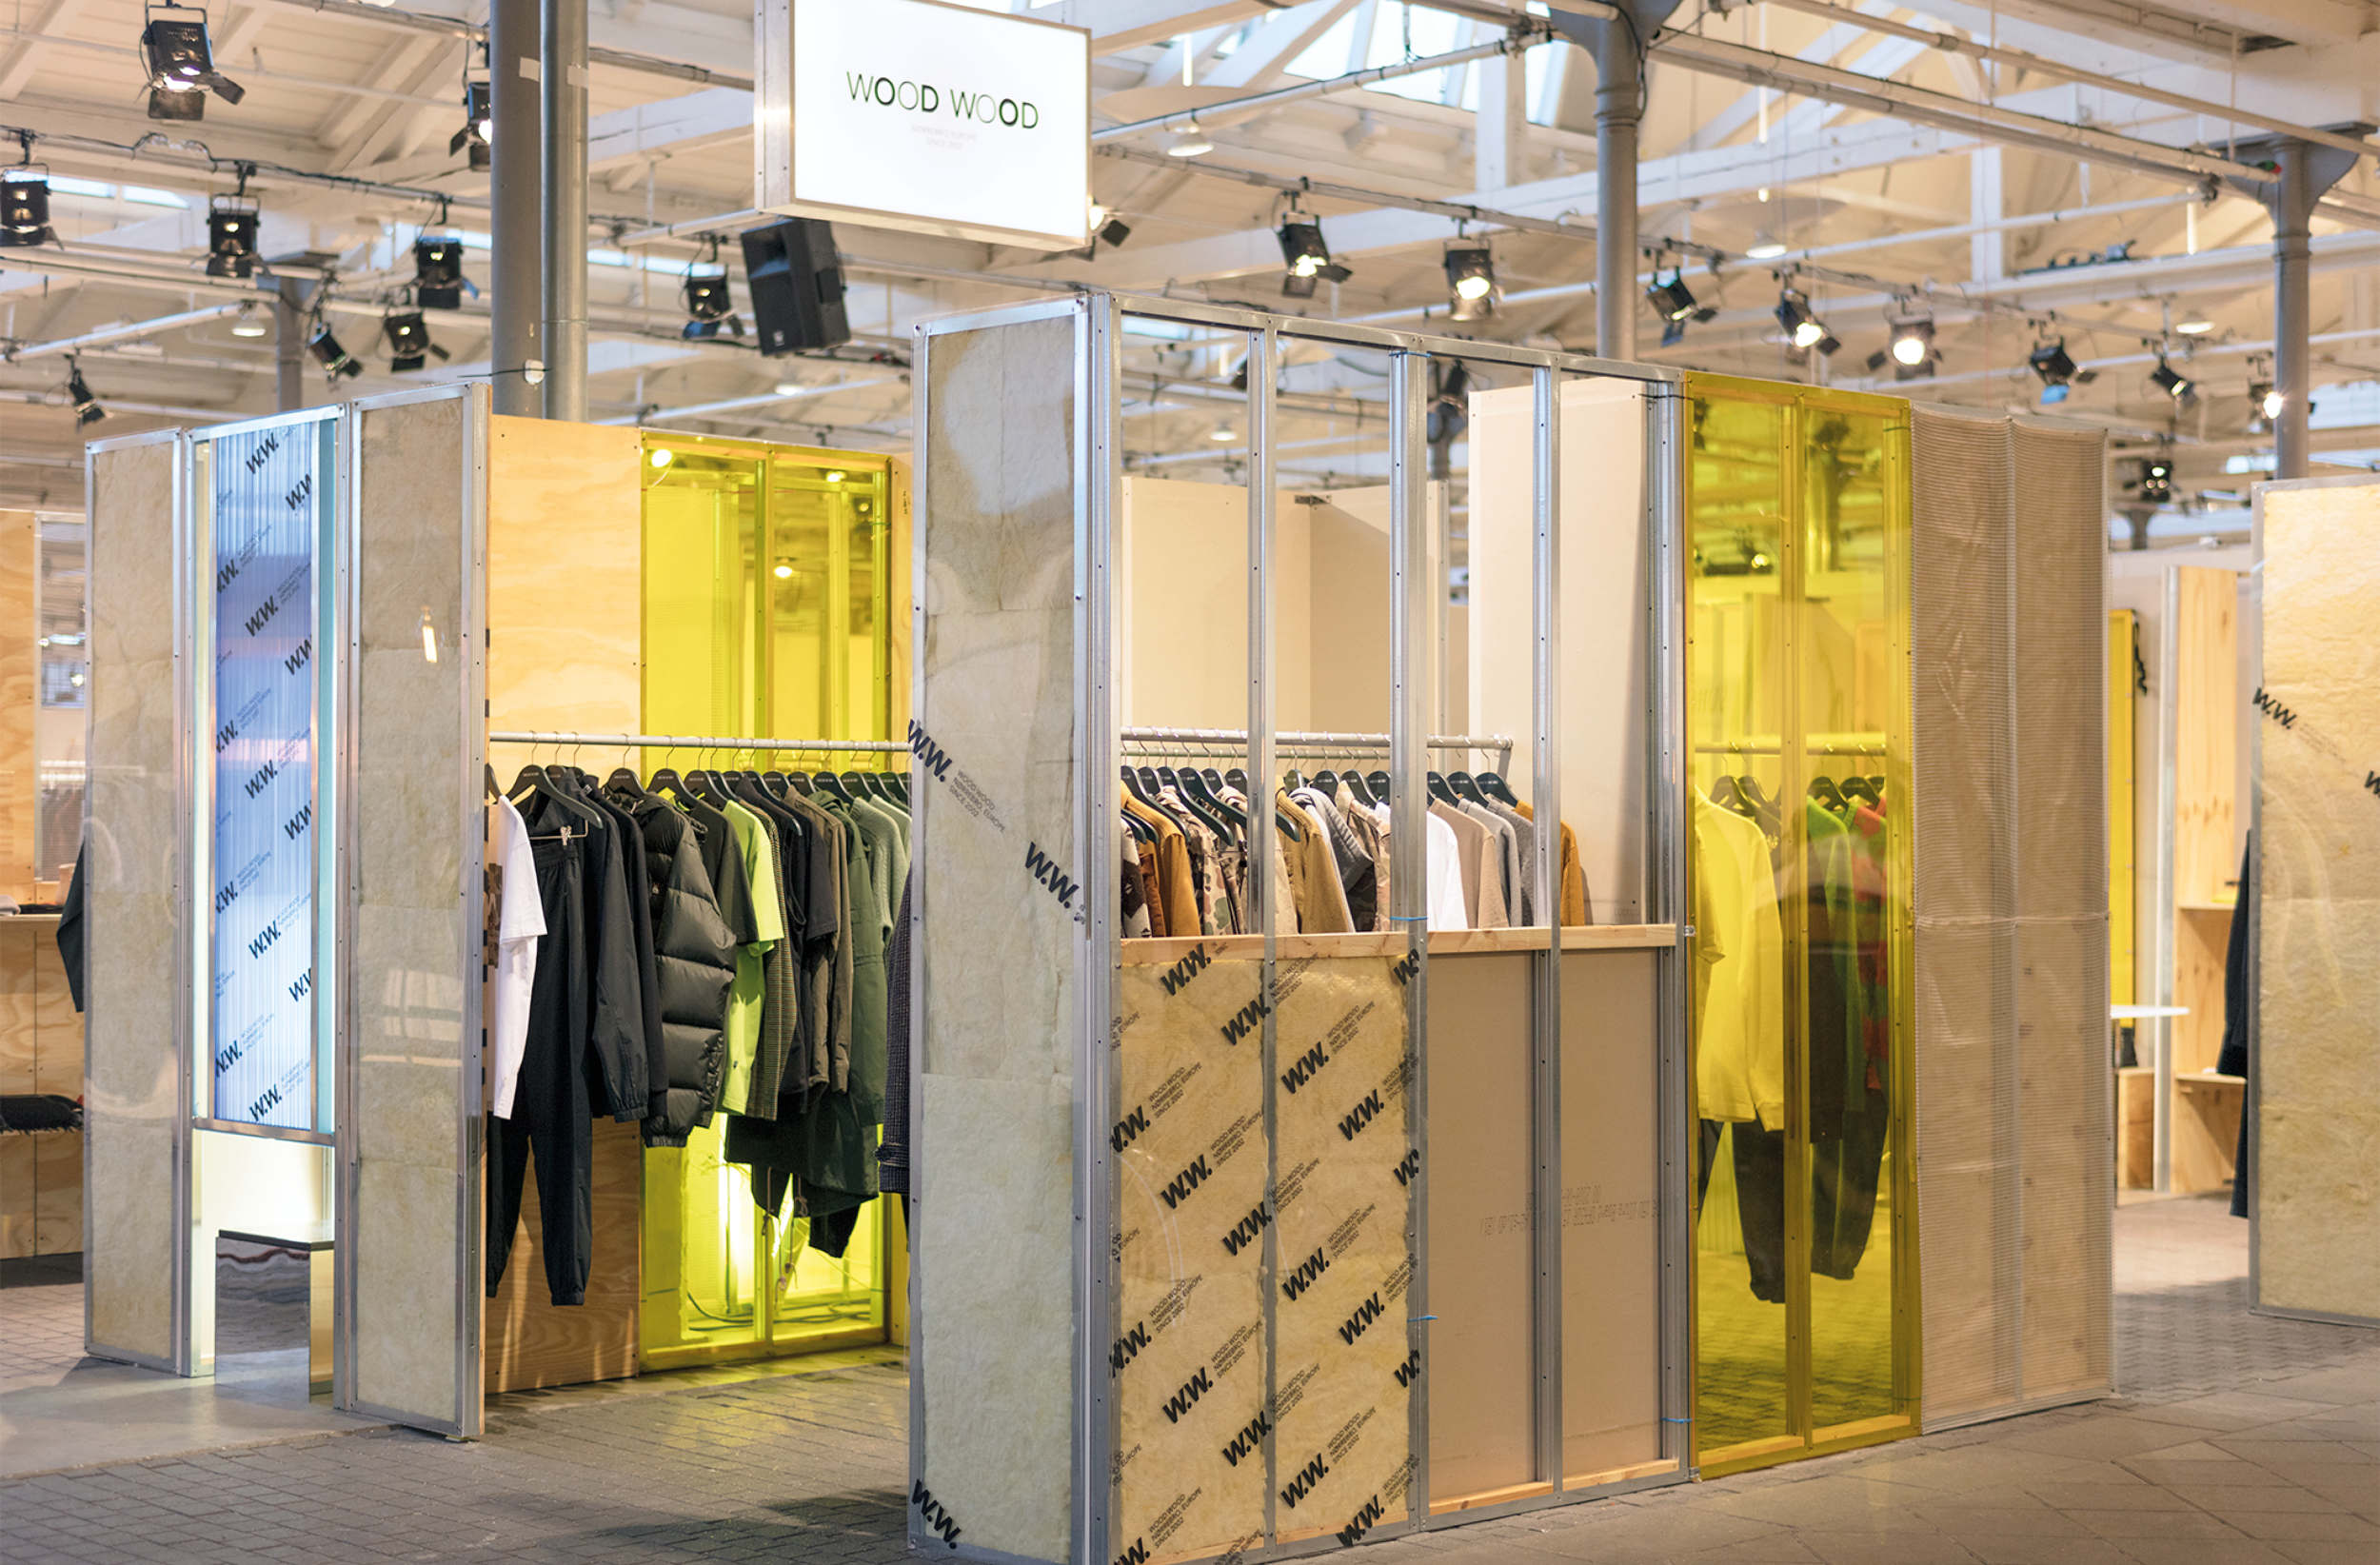 Exhibition Booth Materials : Wood wood revolver exhibition booth spacon & x